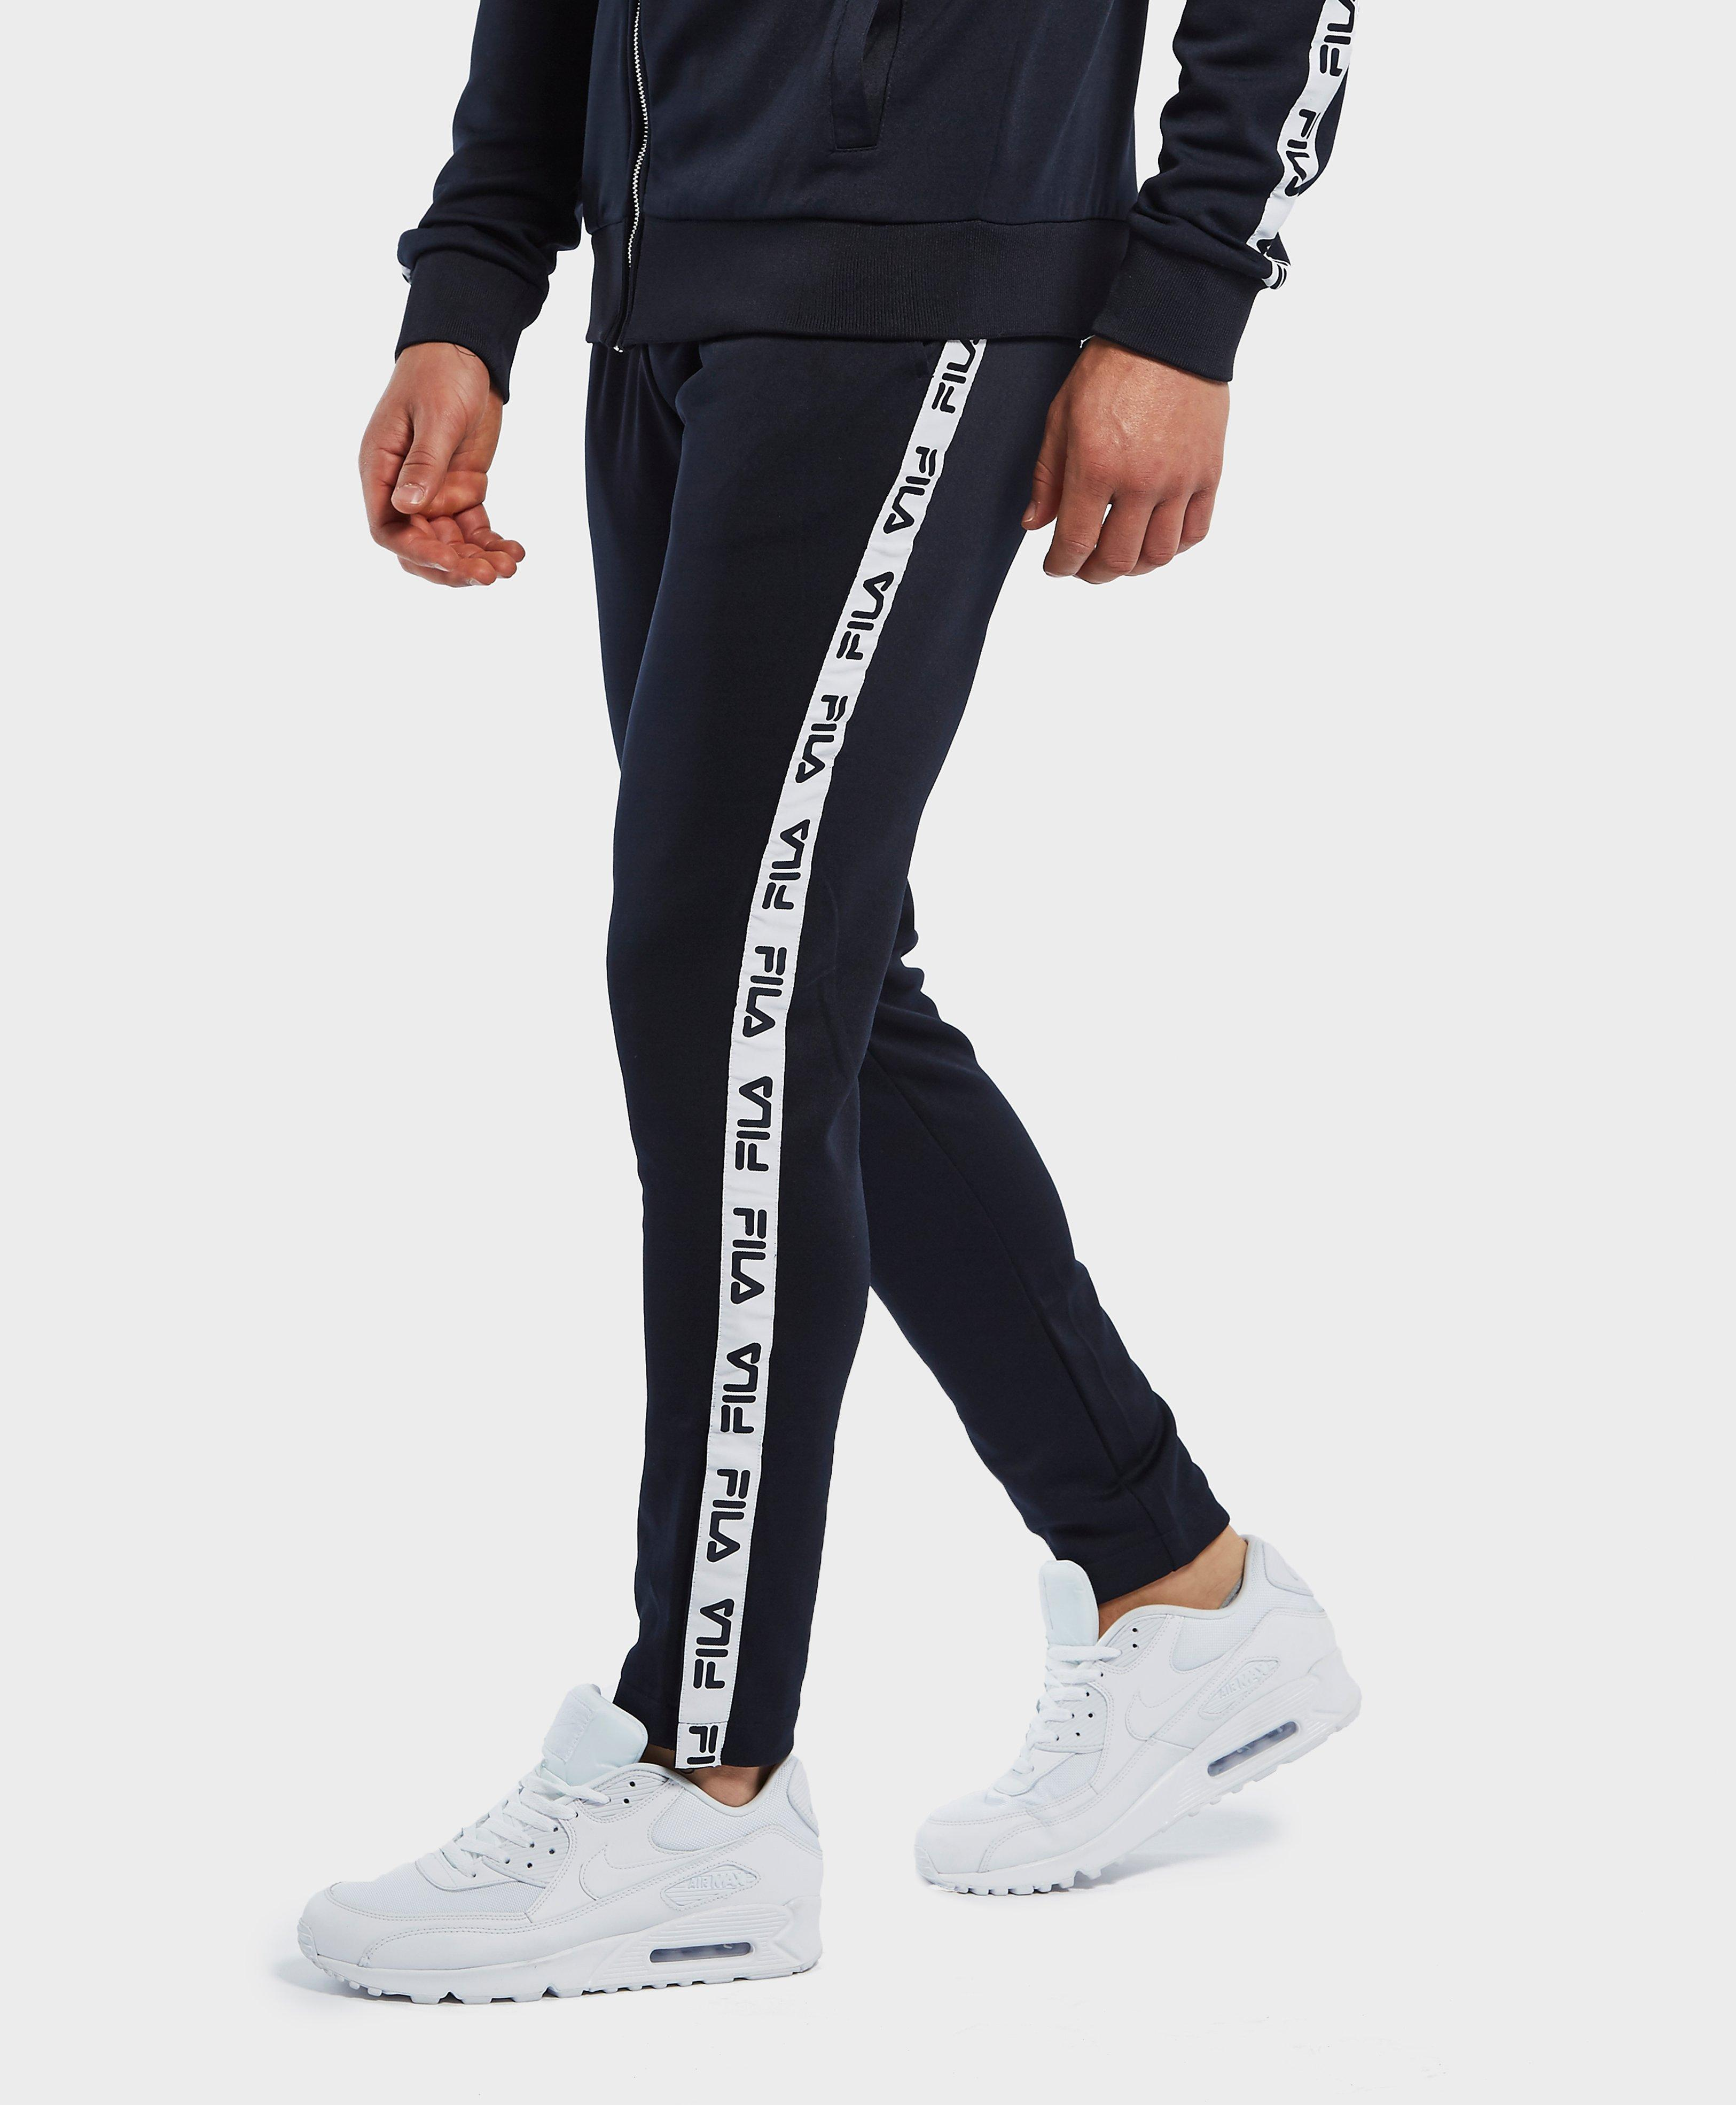 4f154debf1d3 Fila Comino Track Pants - Exclusive in Blue for Men - Lyst